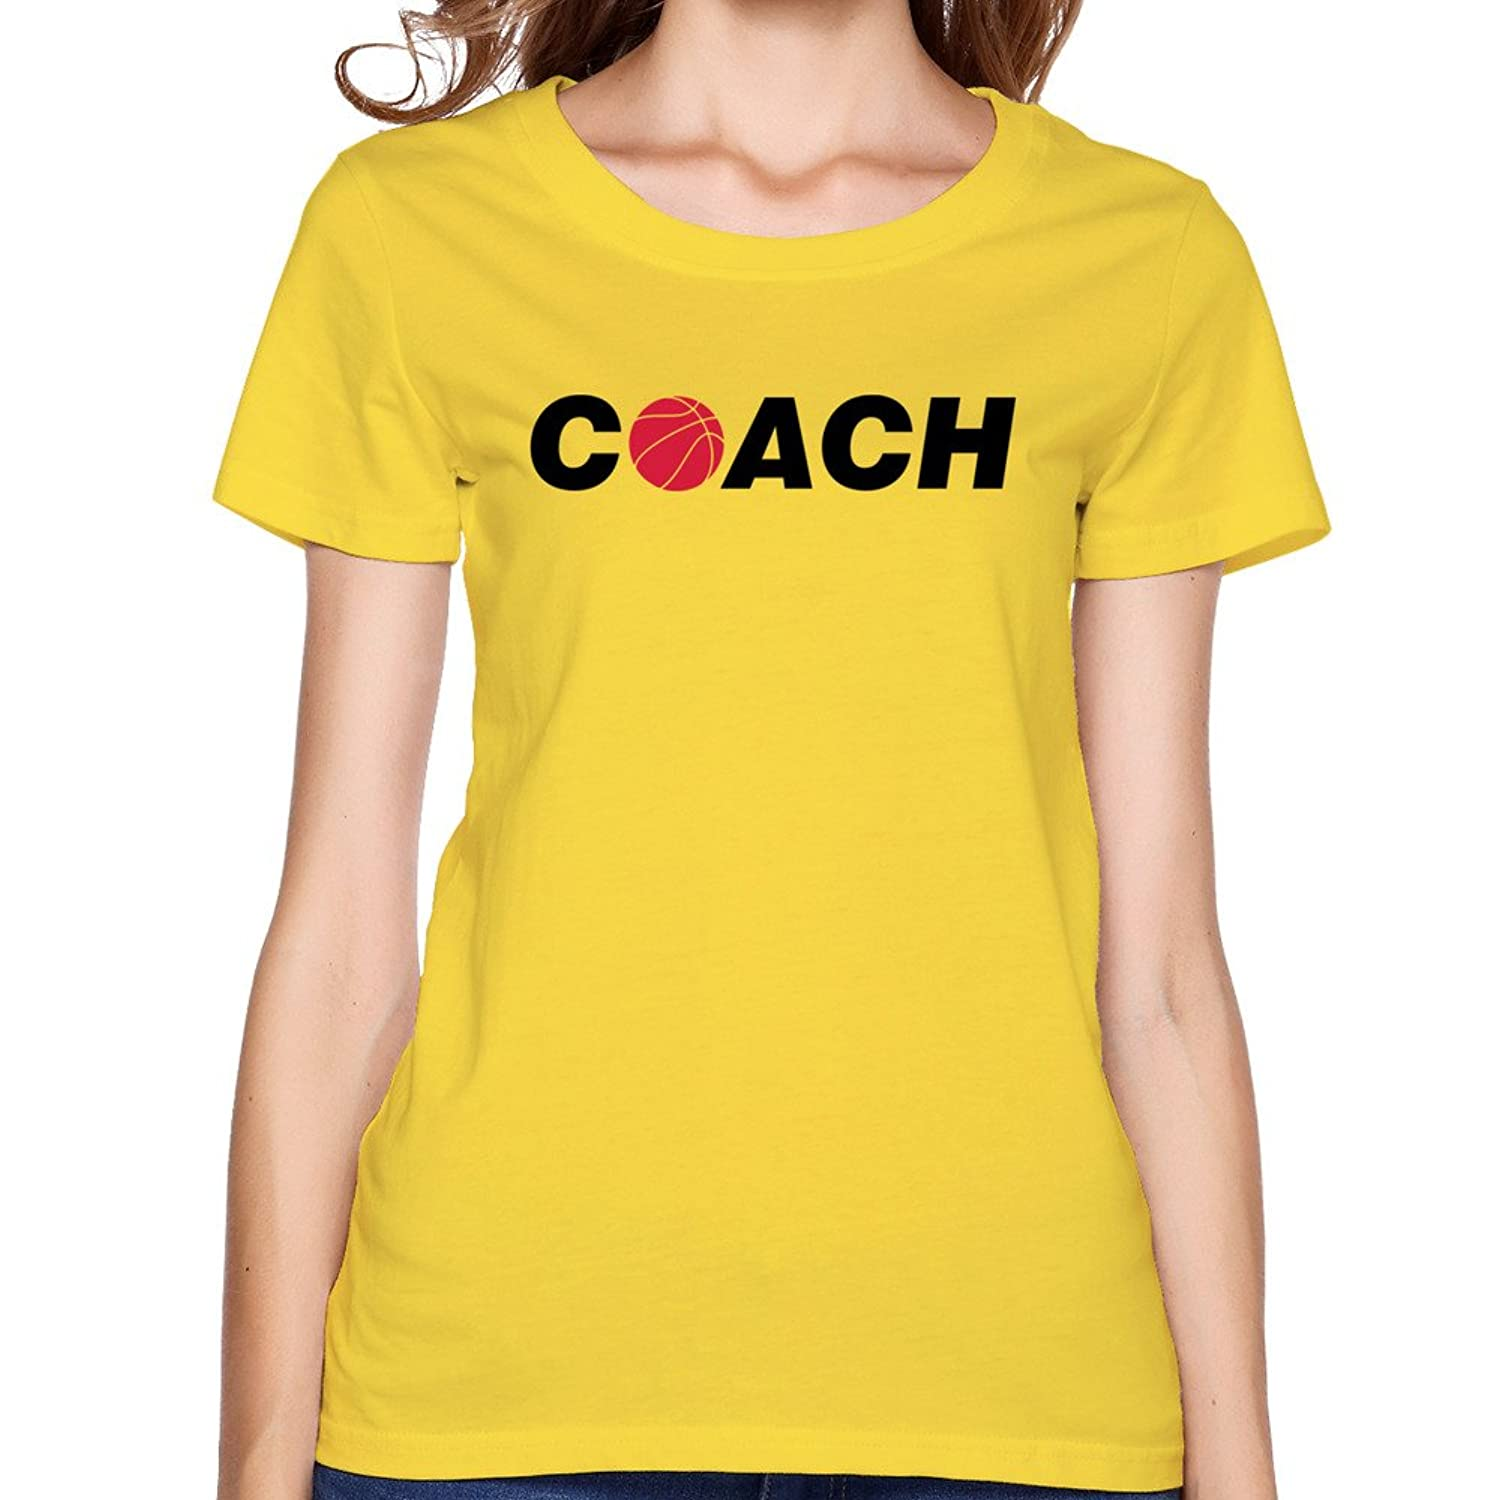 Women's Tee Coach White